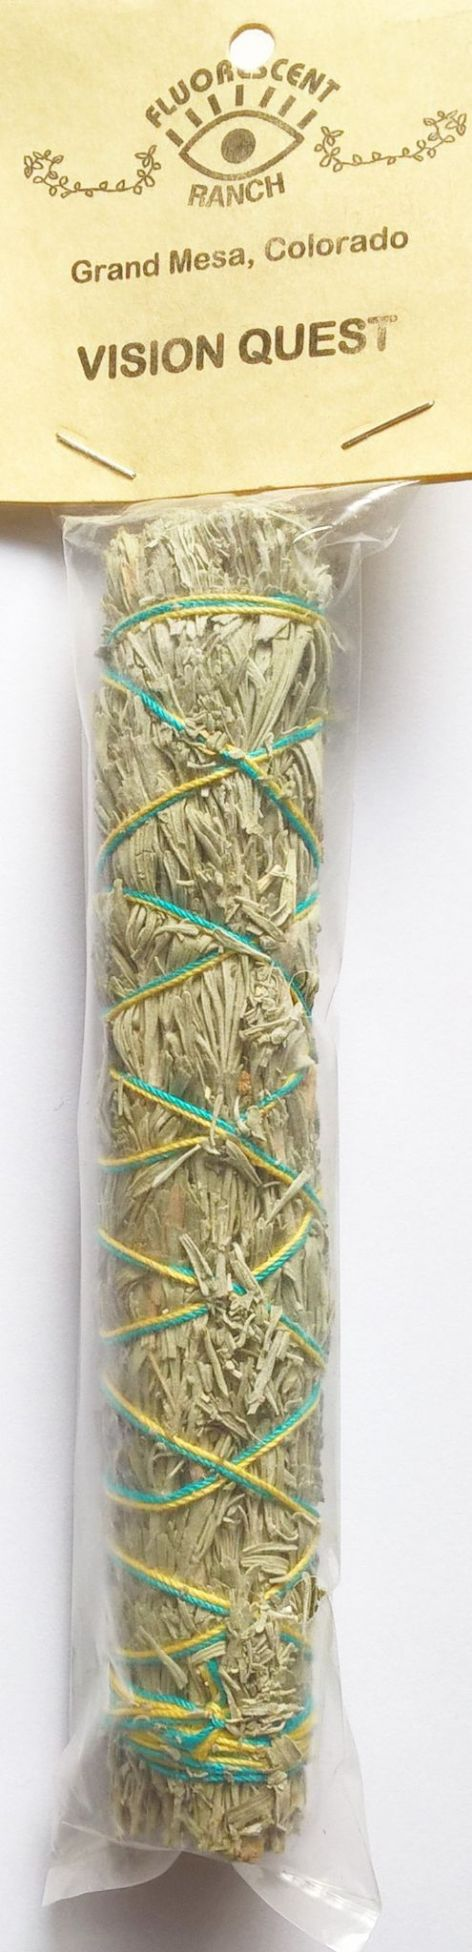 "Vision Quest 7"" Smudge Stick: Red Willow, Osha Root, Fennel, Mullein, Cascara Sagrada & Blue Sage"